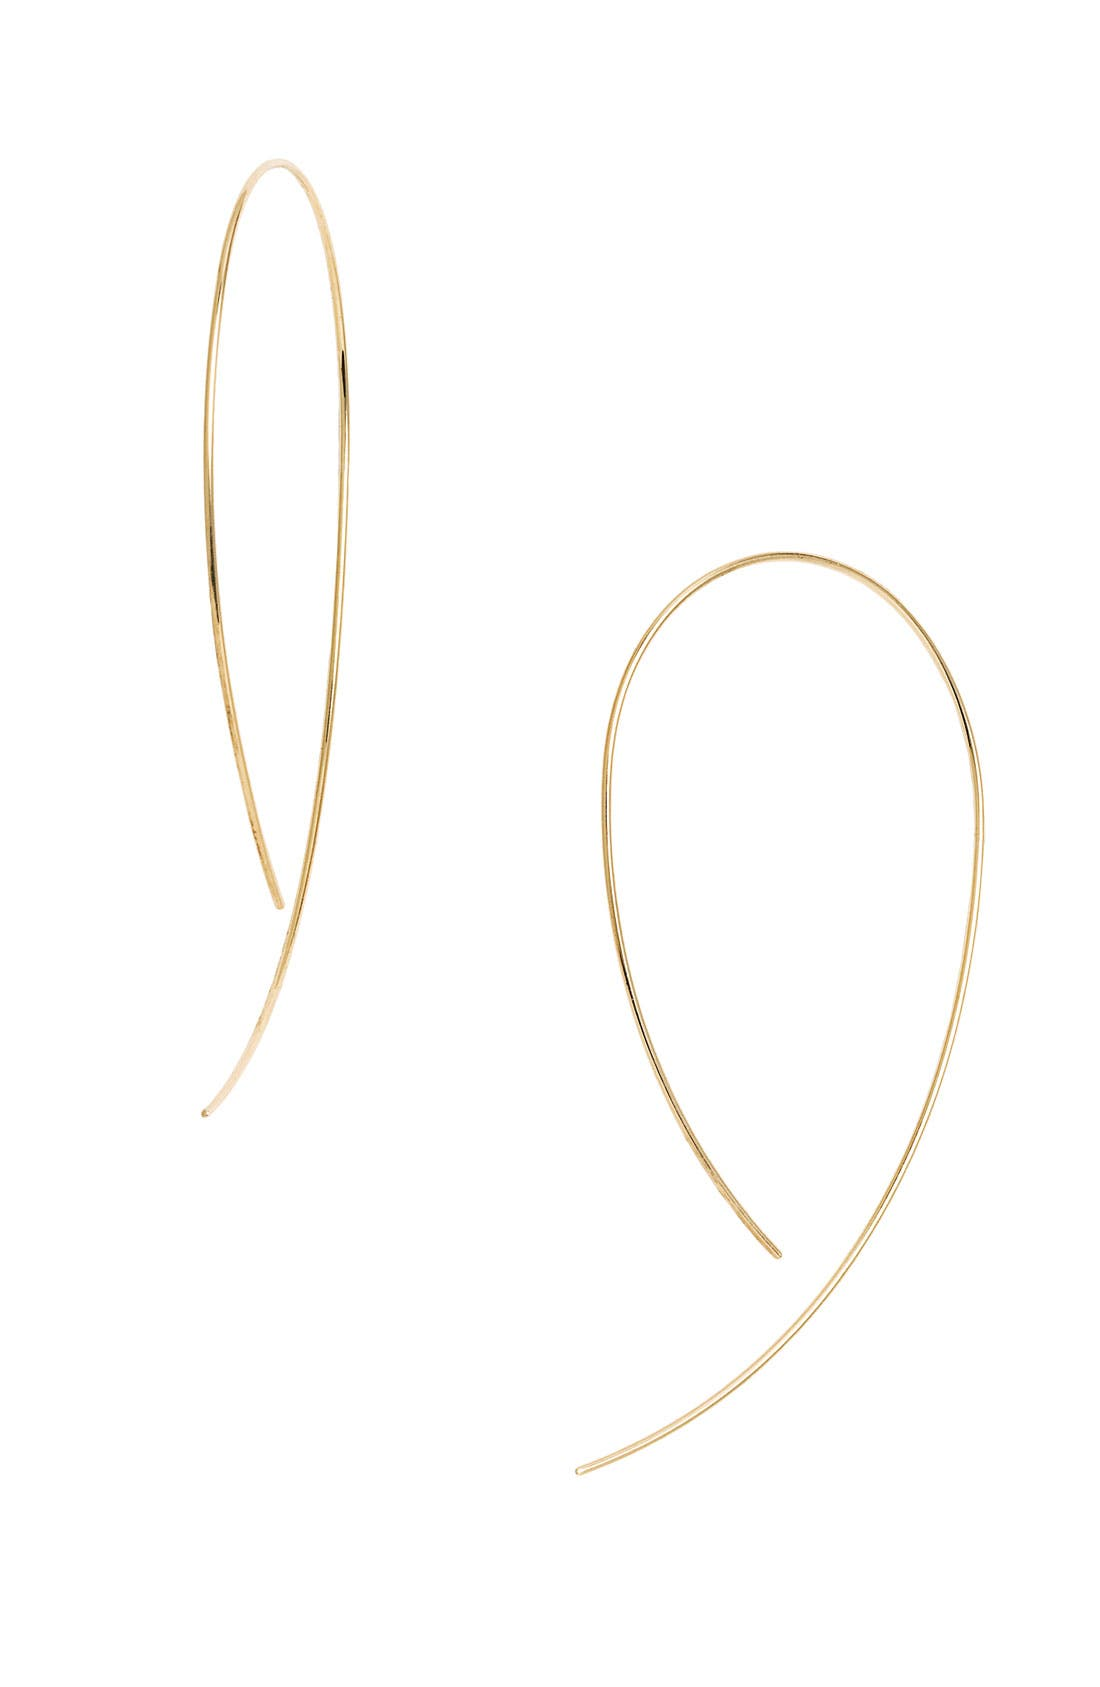 Alternate Image 1 Selected - Lana Jewelry 'Hooked on Hoop' Earrings